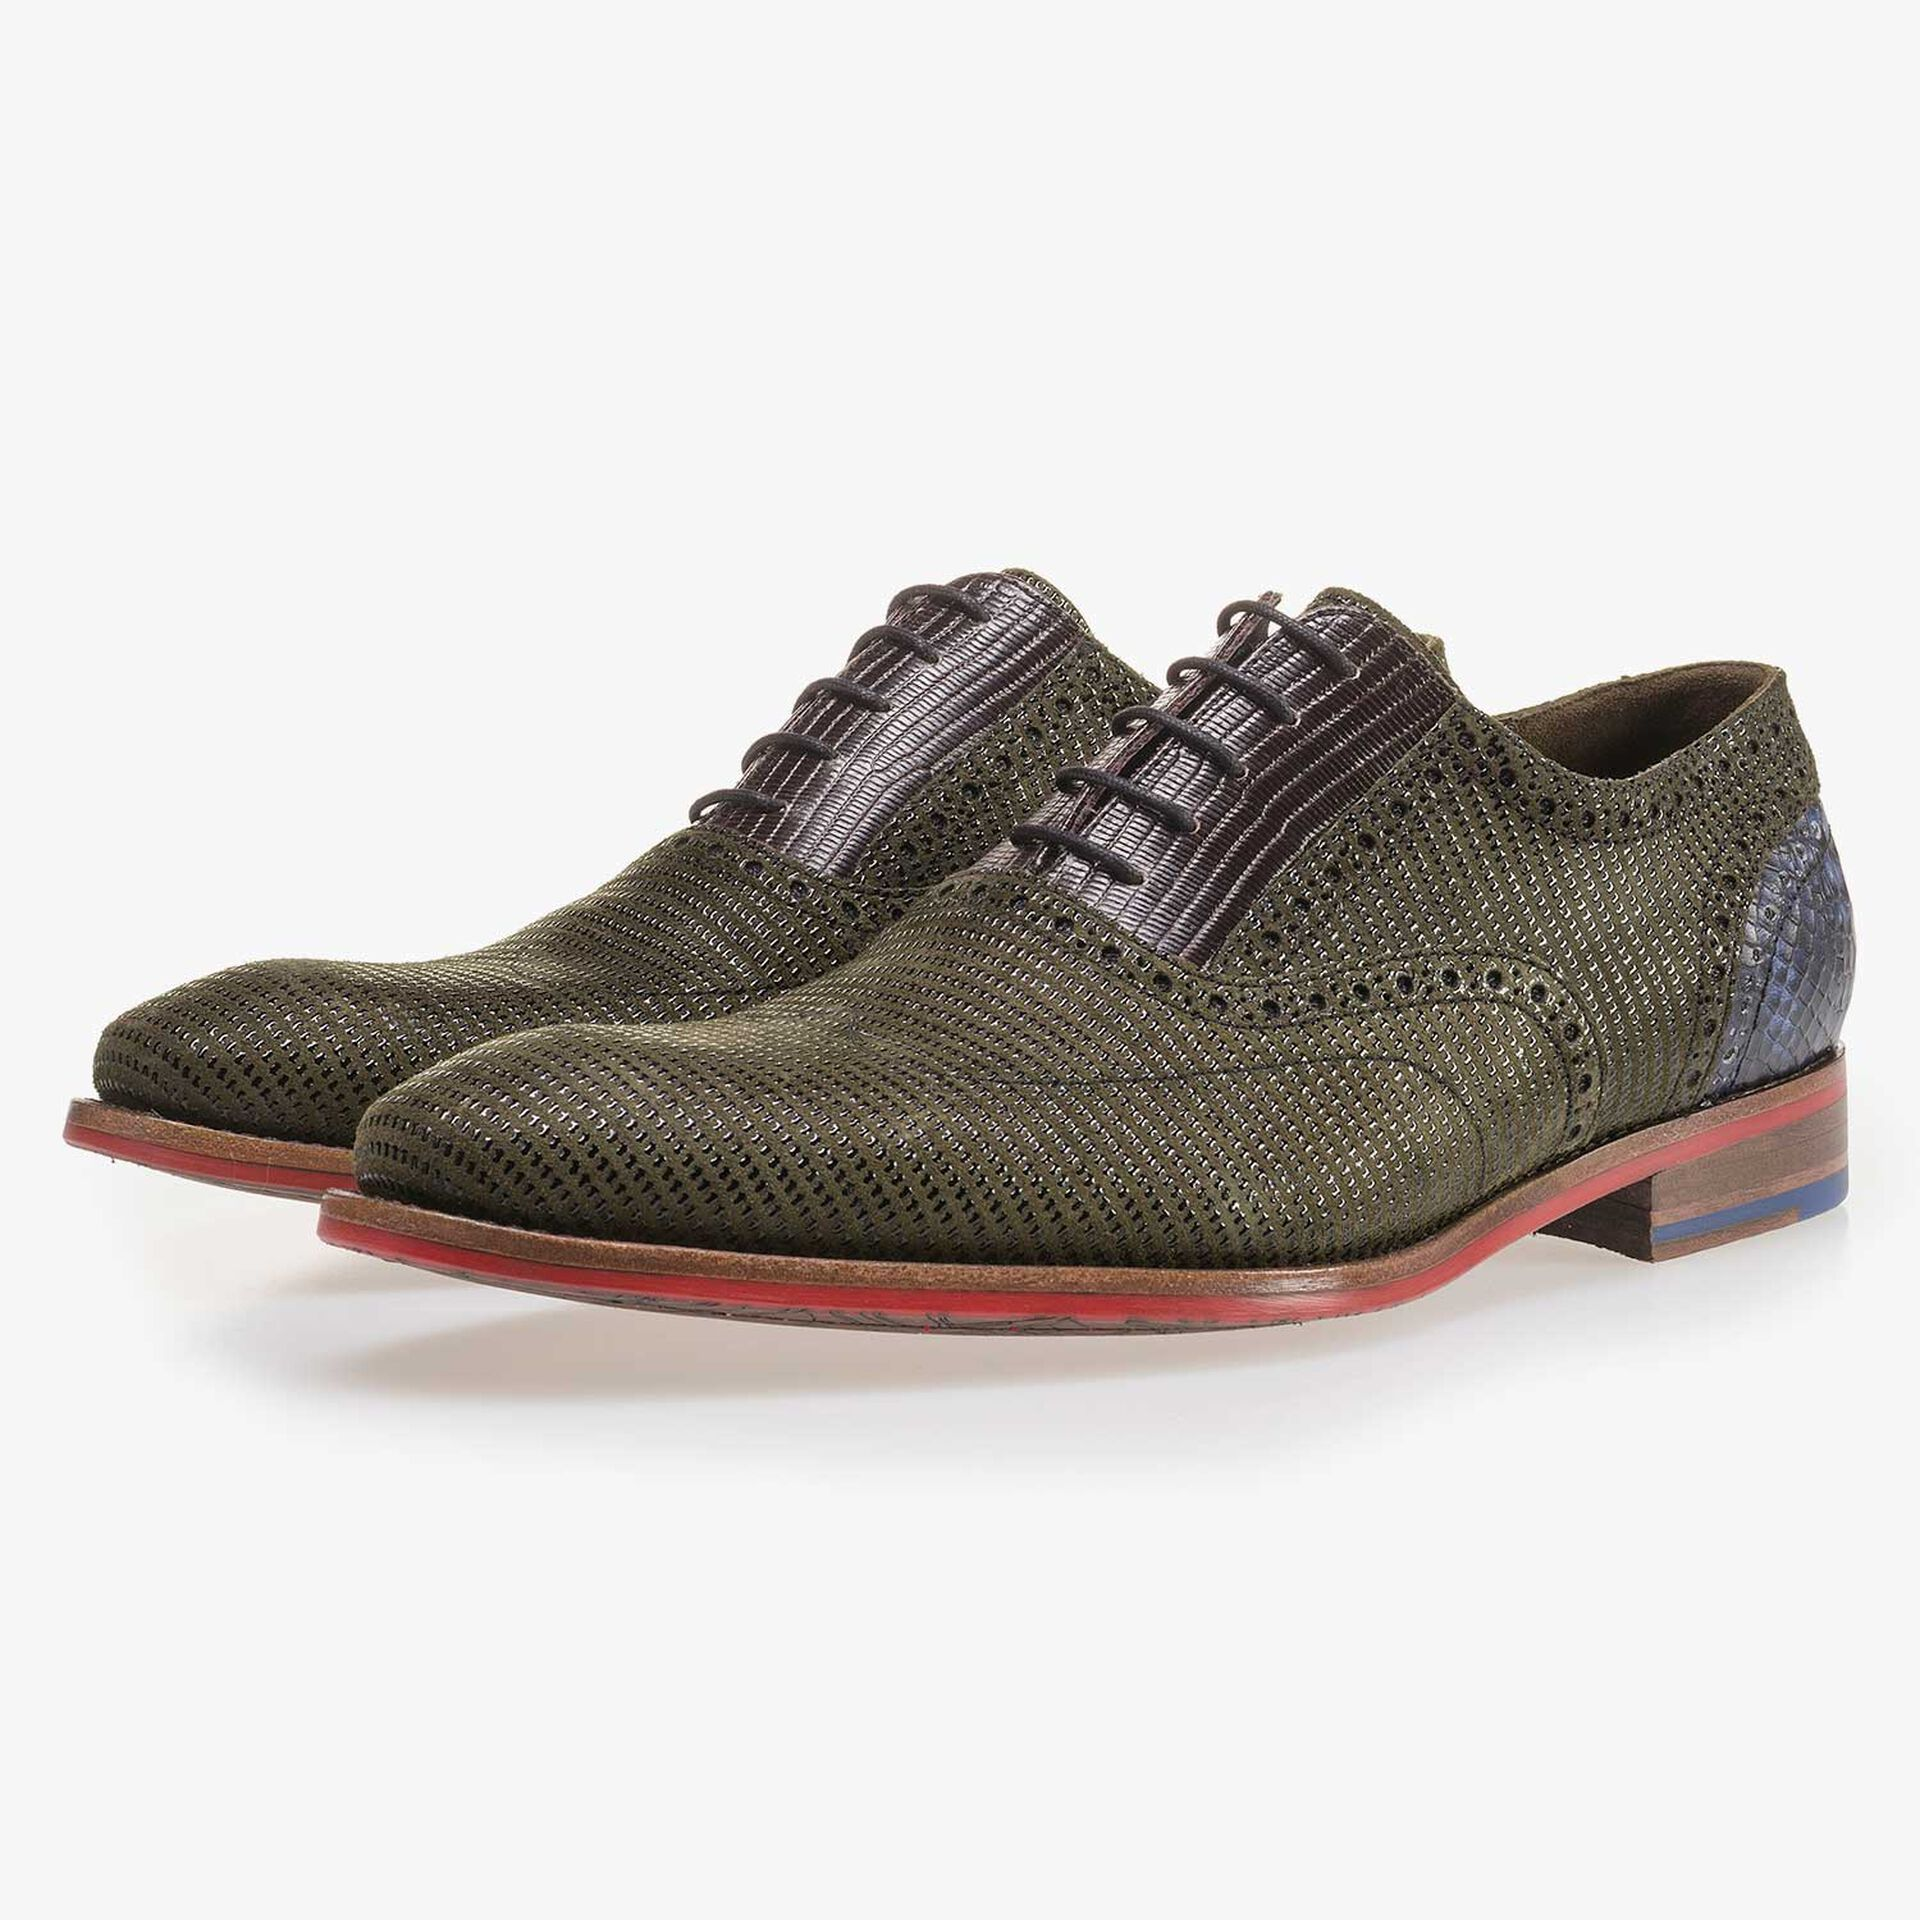 Olive green patterned suede leather lace shoe